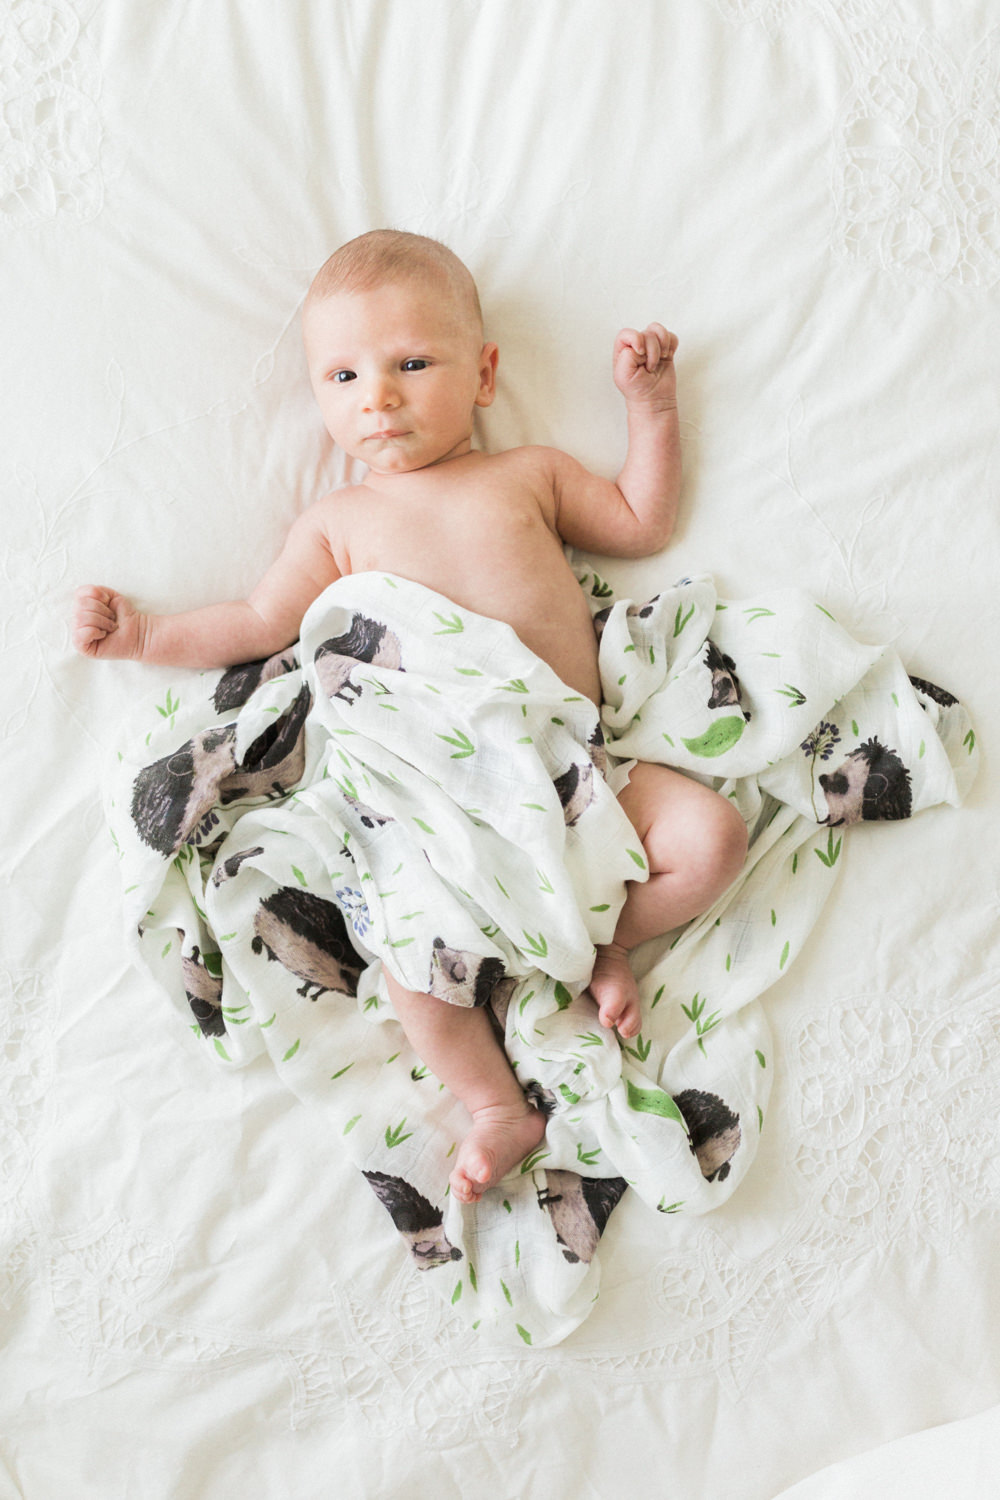 Calgary-Newborn-Photography-in-home-session-25.jpg